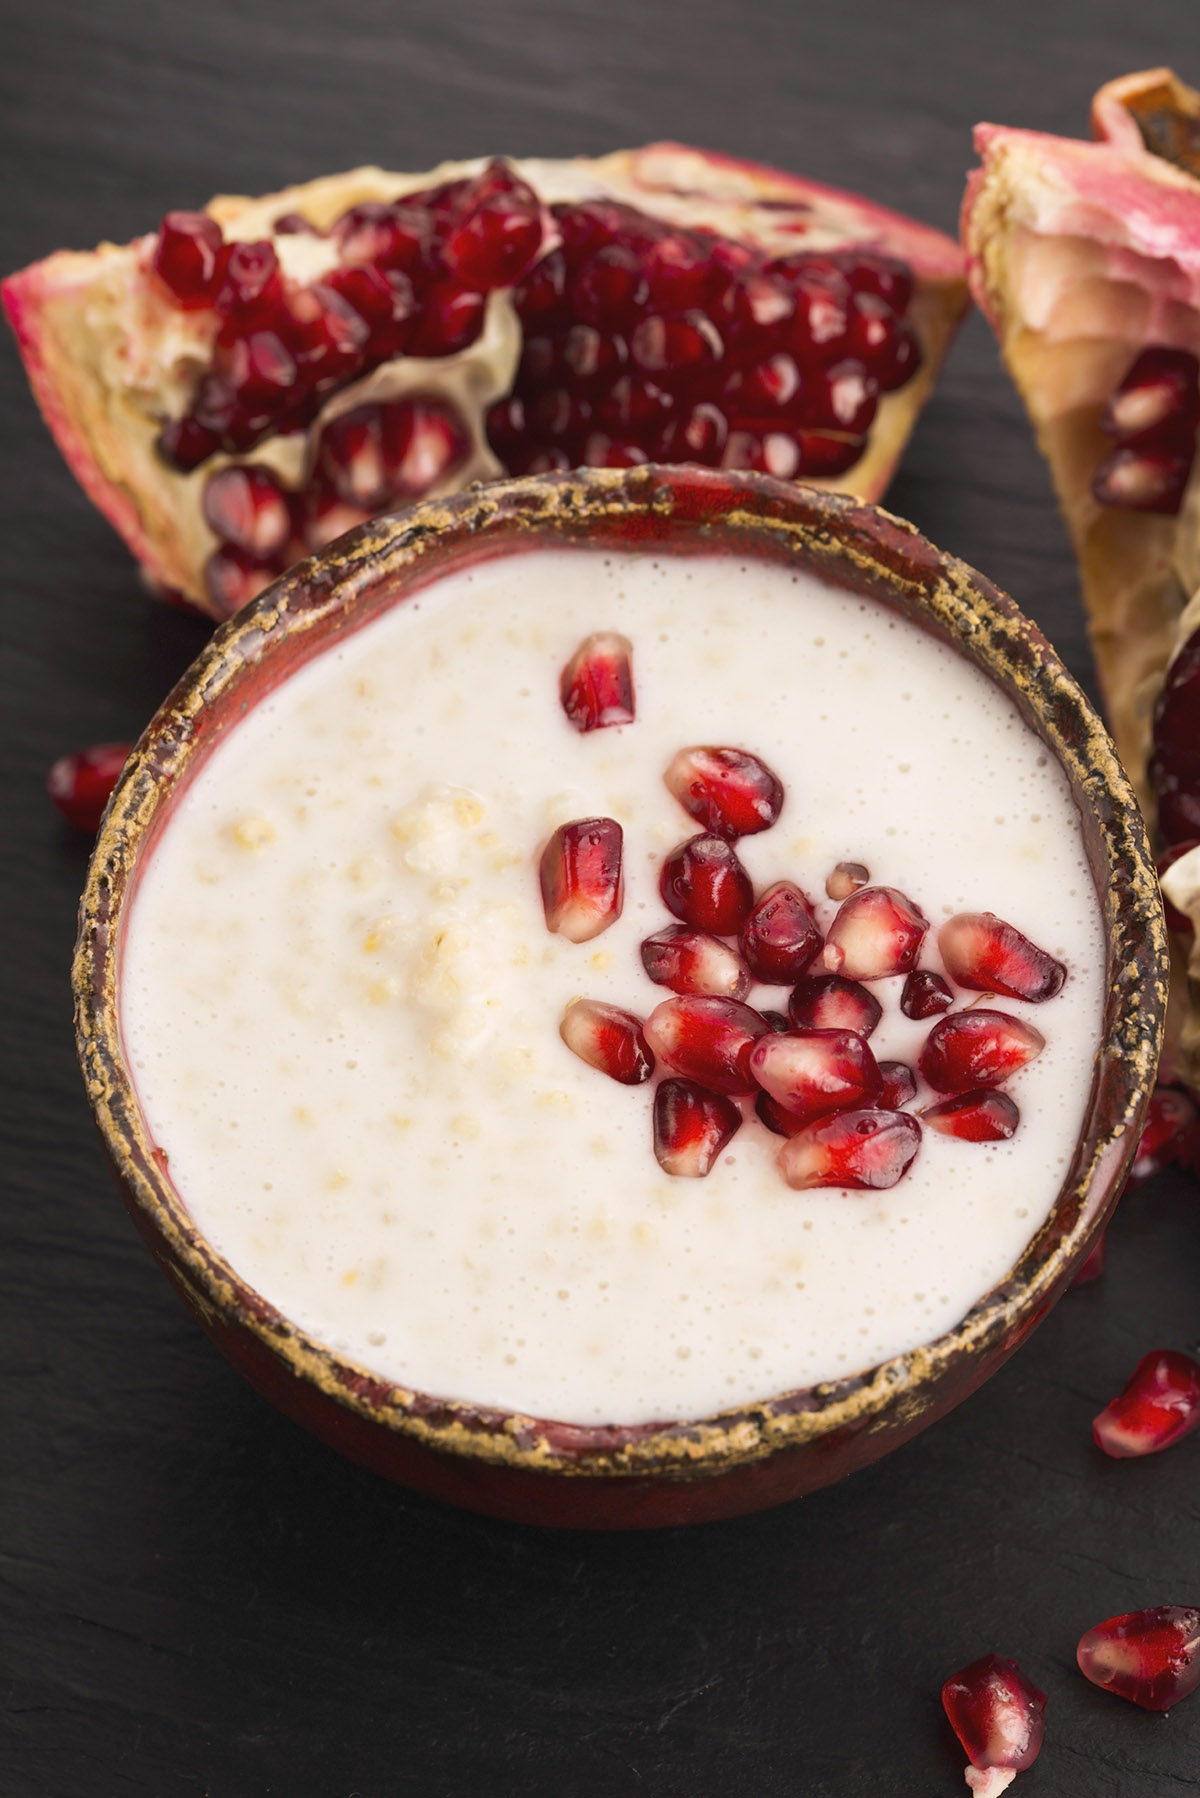 Creamy Coconut Pudding with Pomegranate Arils